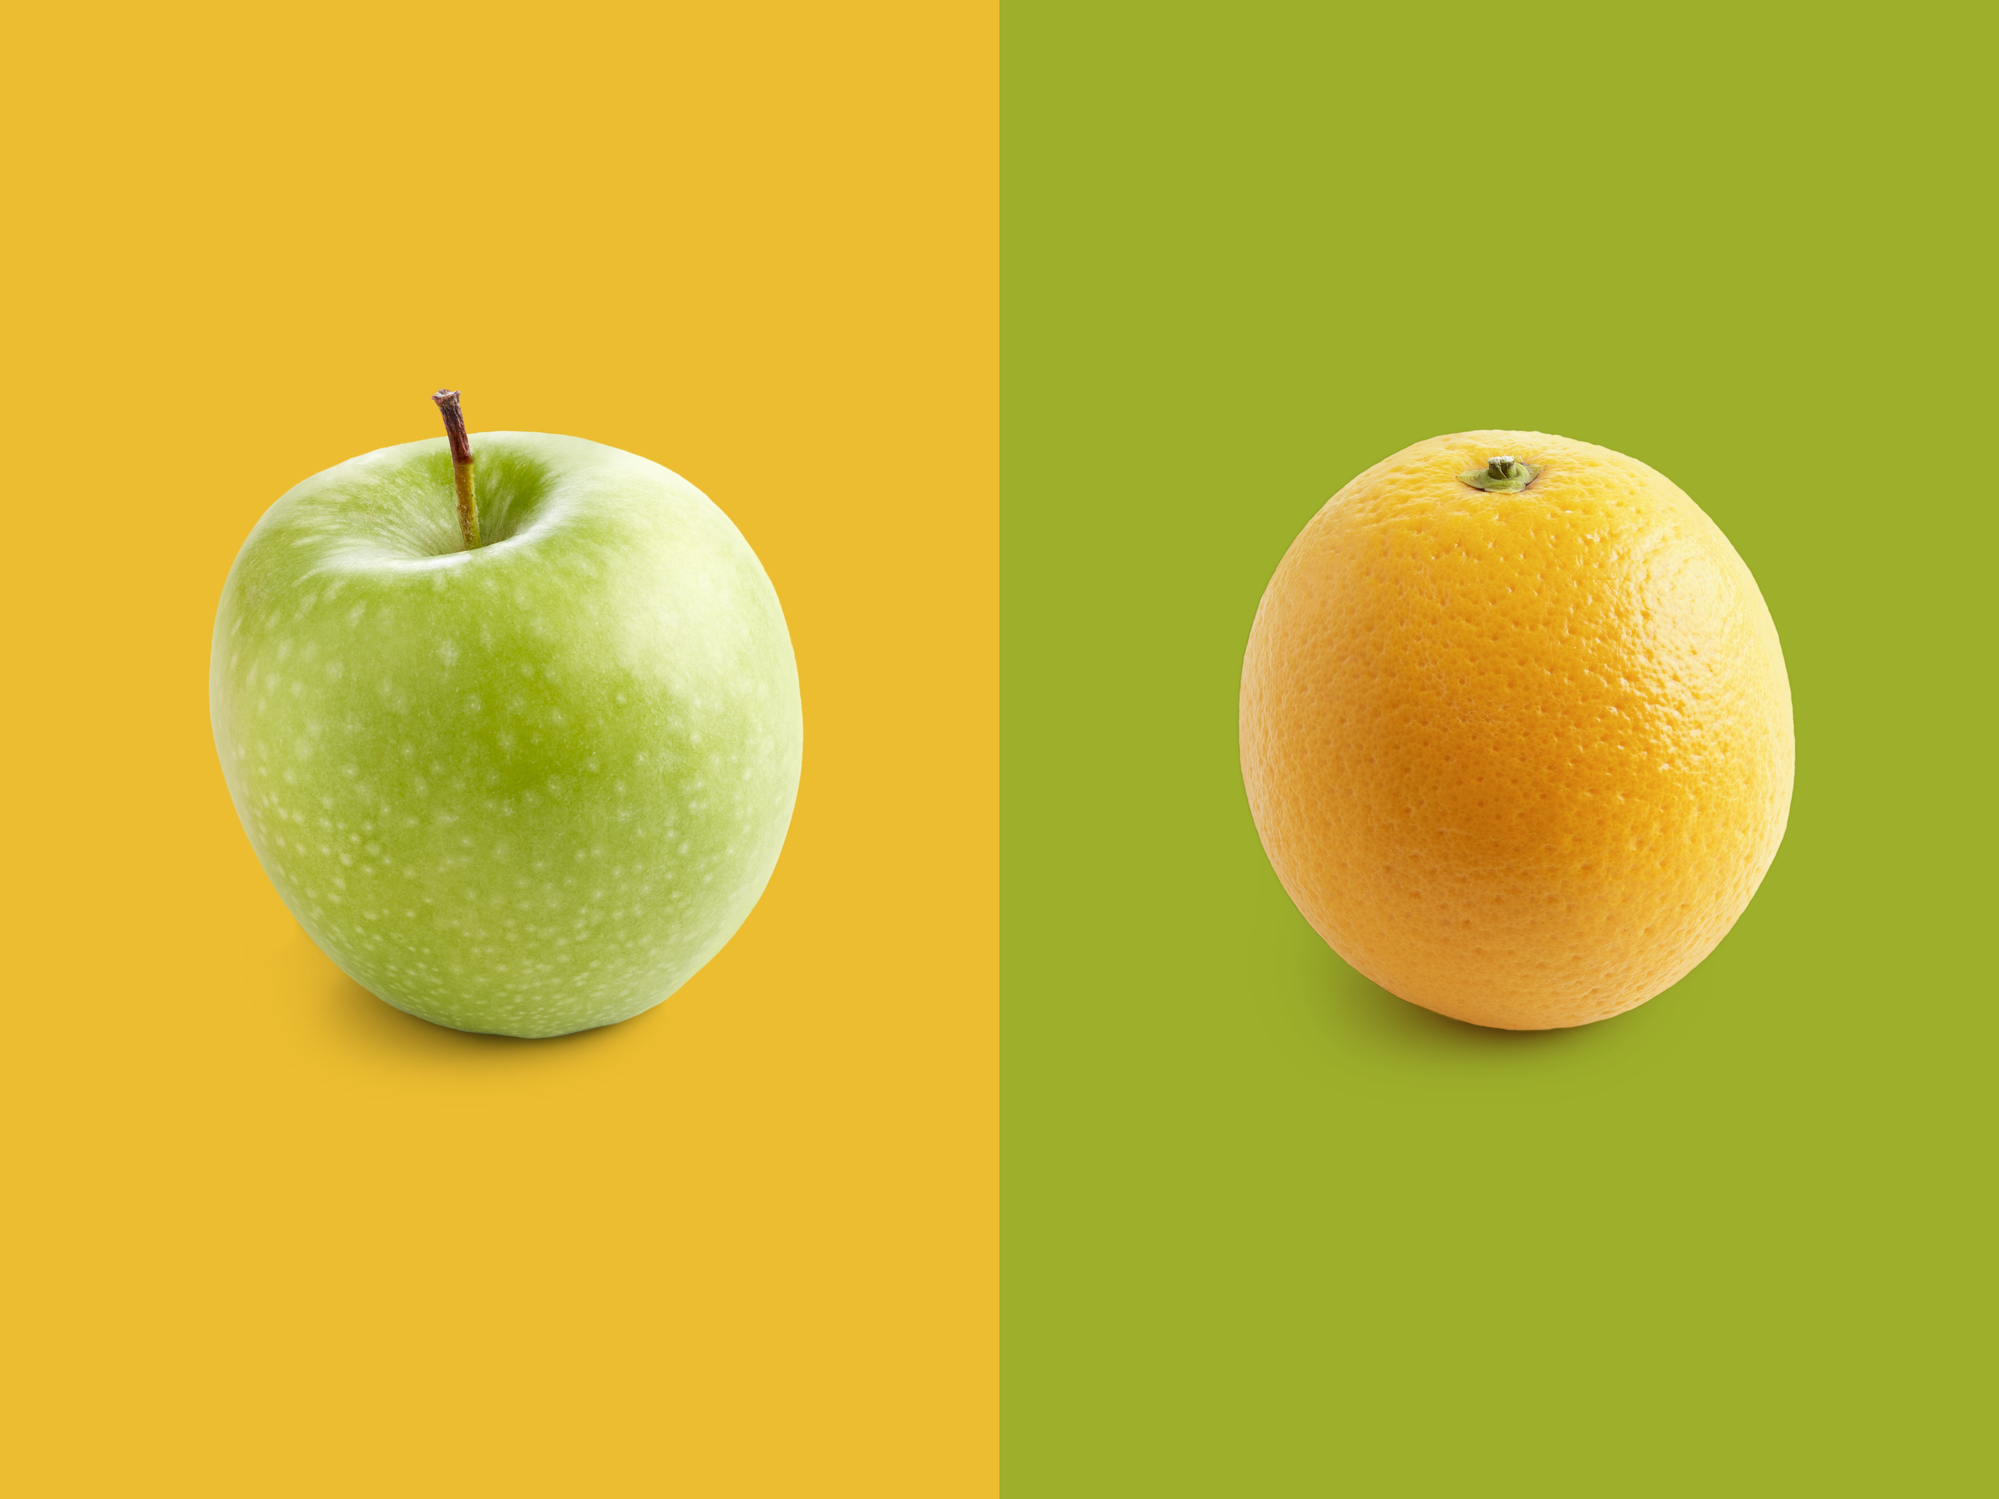 Apple and orange against yellow and green background.